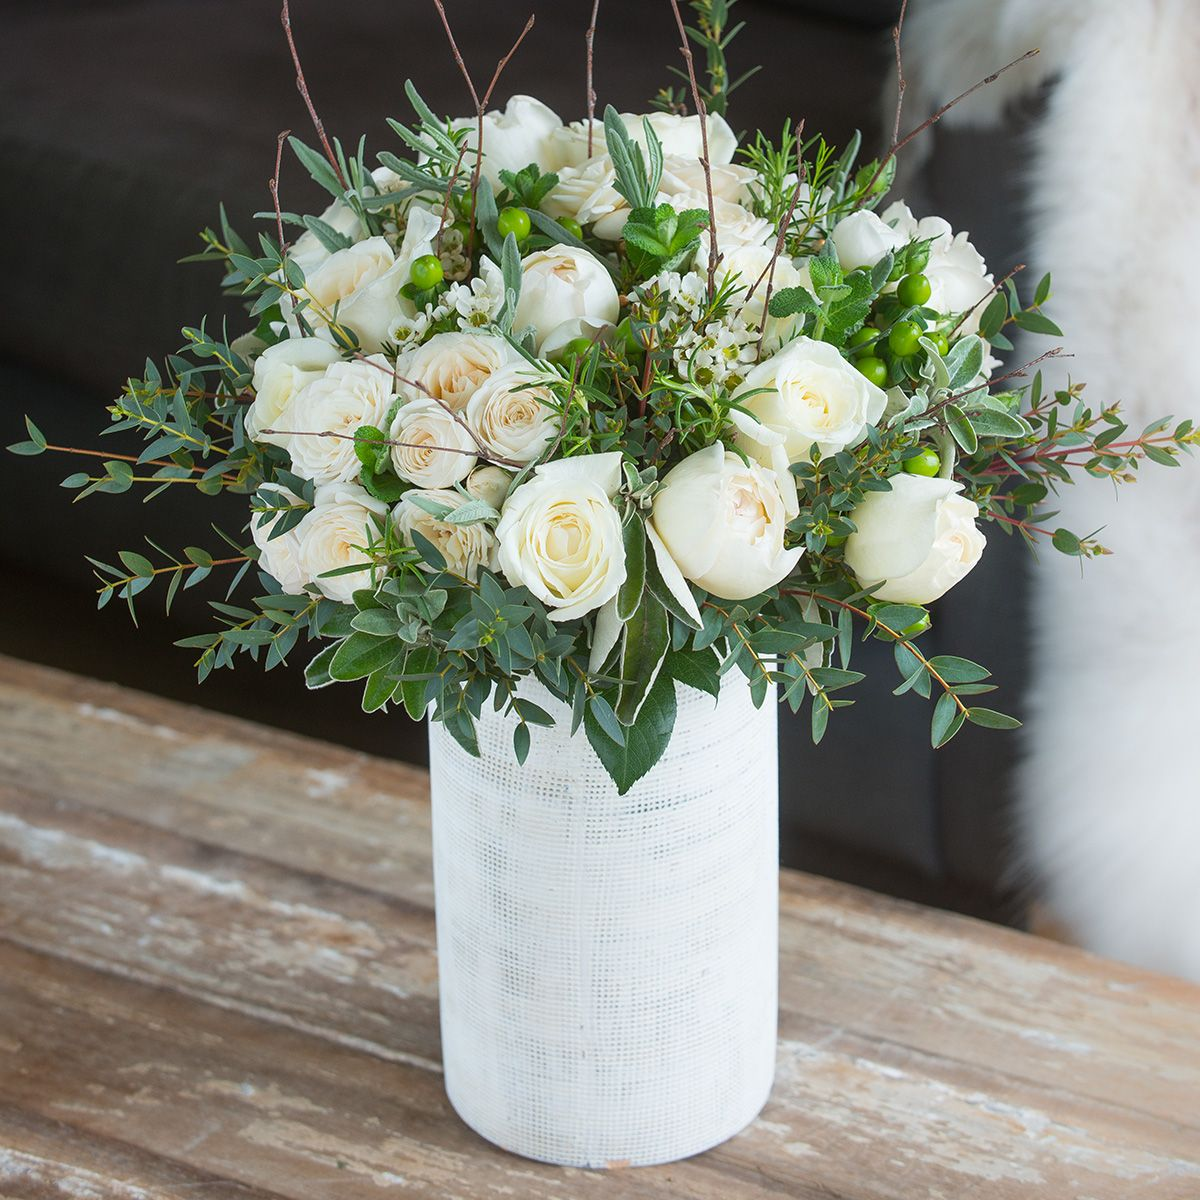 Mother day flowers little spree style inspiration for modern mothers mothers day flowers izmirmasajfo